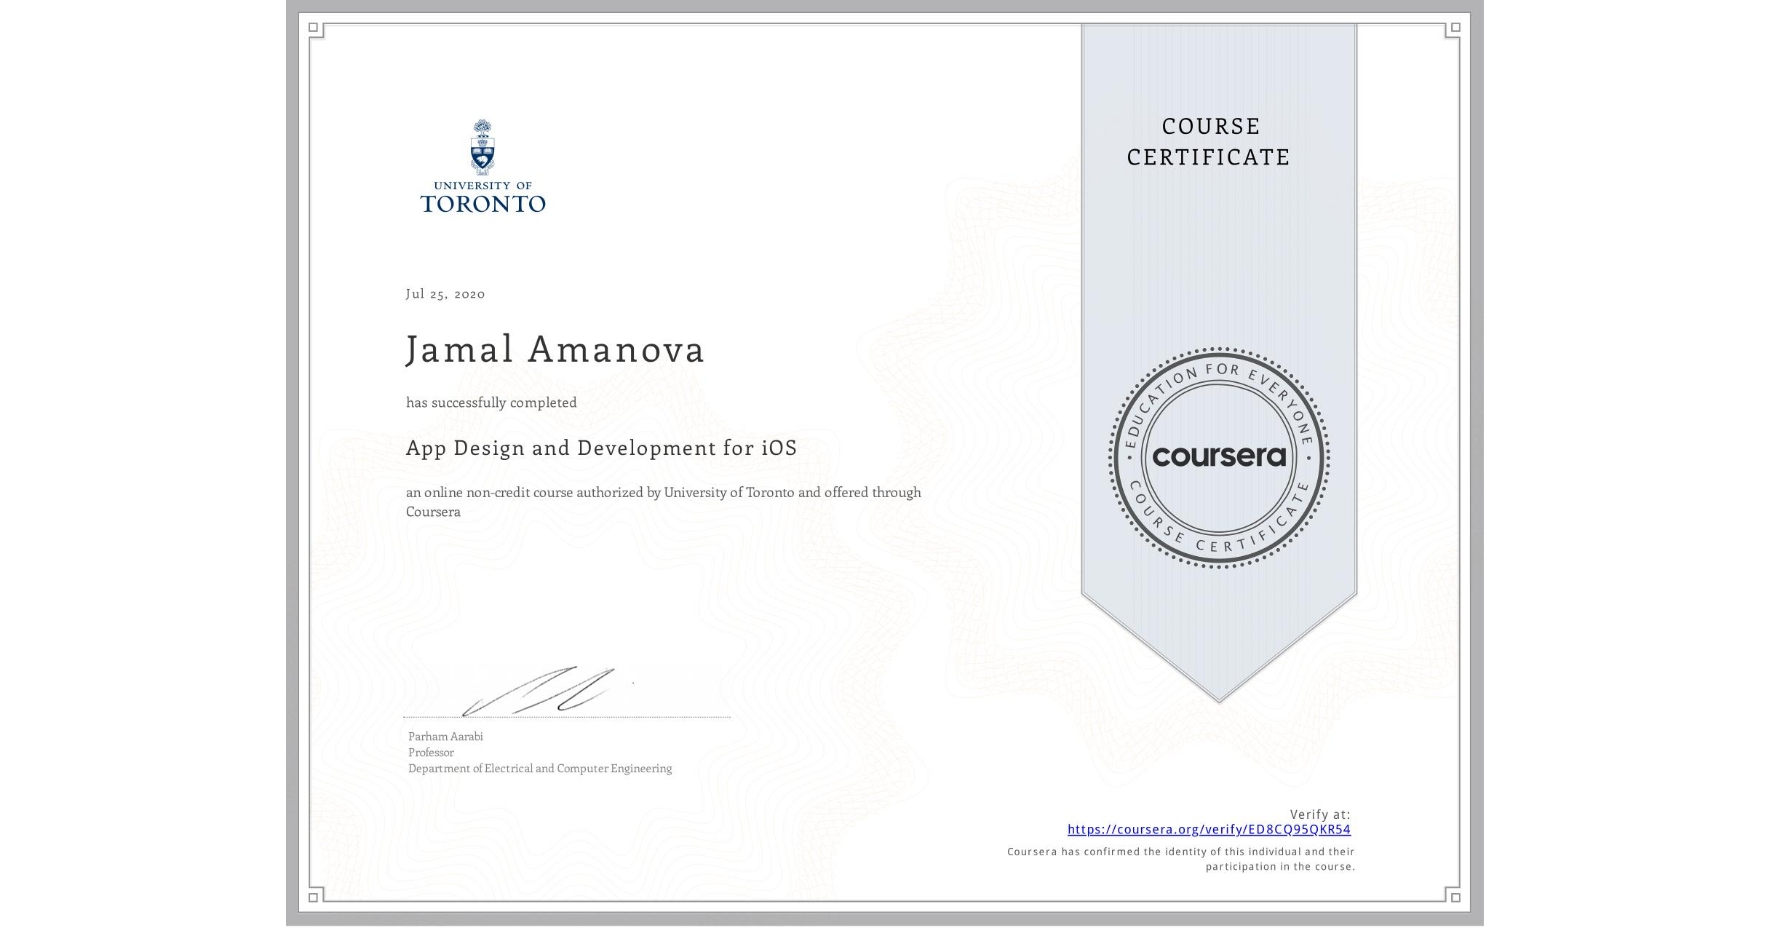 View certificate for Jamal Amanova, App Design and Development for iOS, an online non-credit course authorized by University of Toronto and offered through Coursera